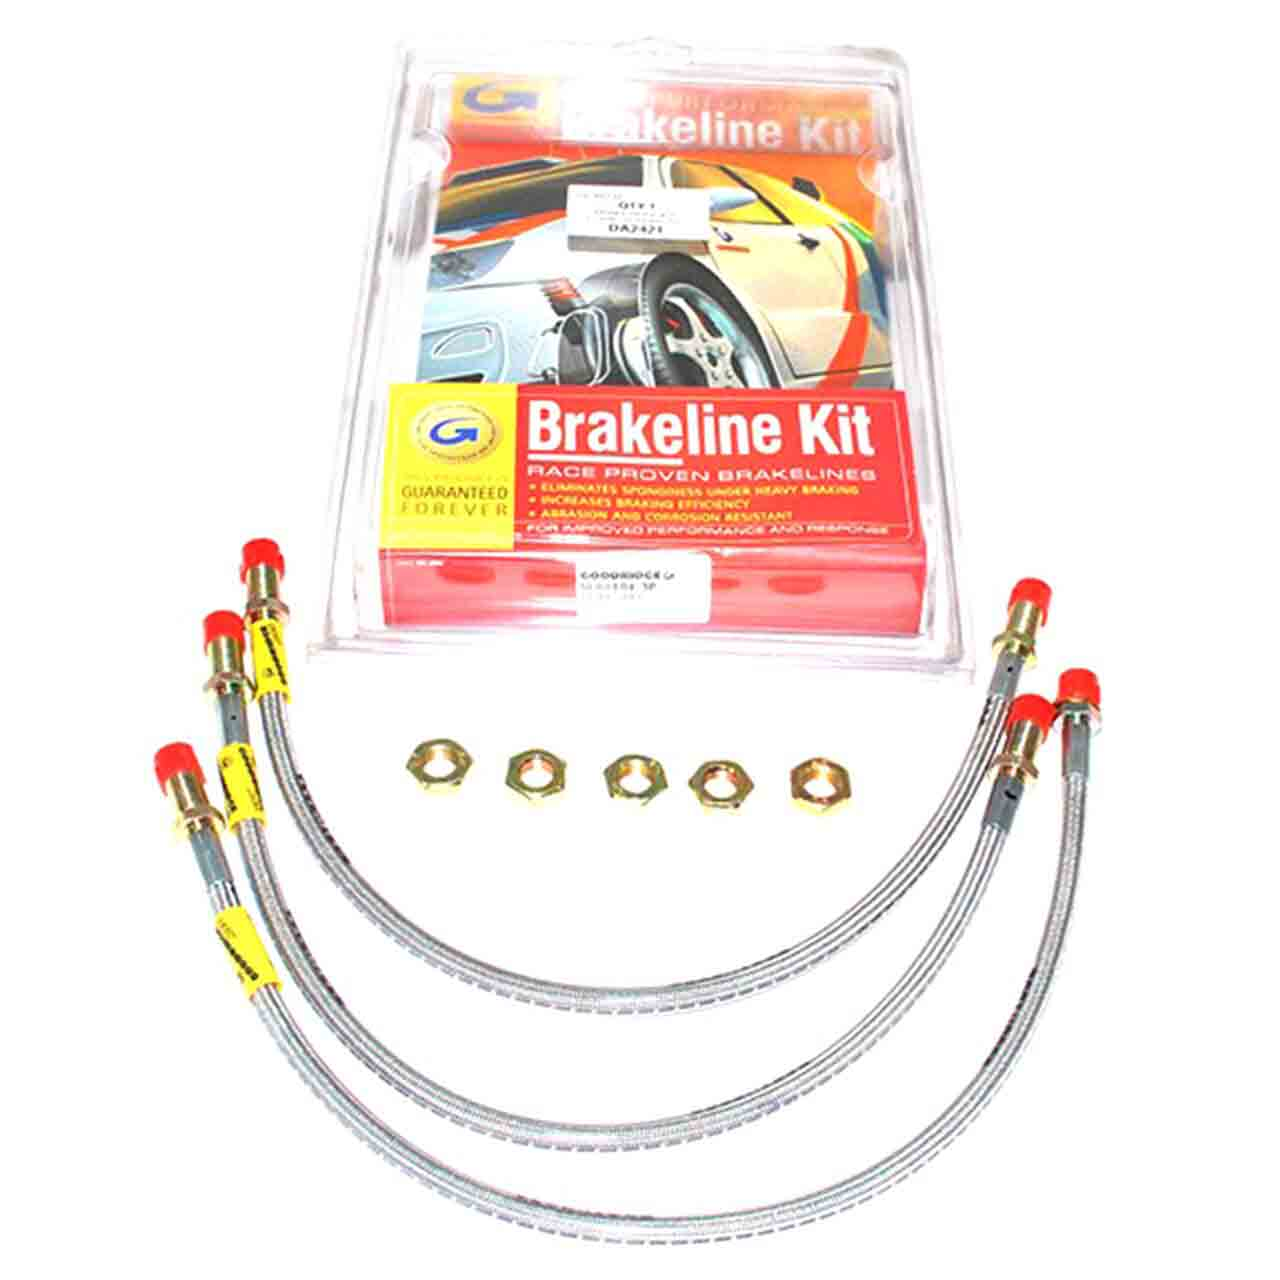 Kit Tubo Freno Standard Serie Acciaio Inox Goodridge Series 1 2 3 Land Rover GR2-07809